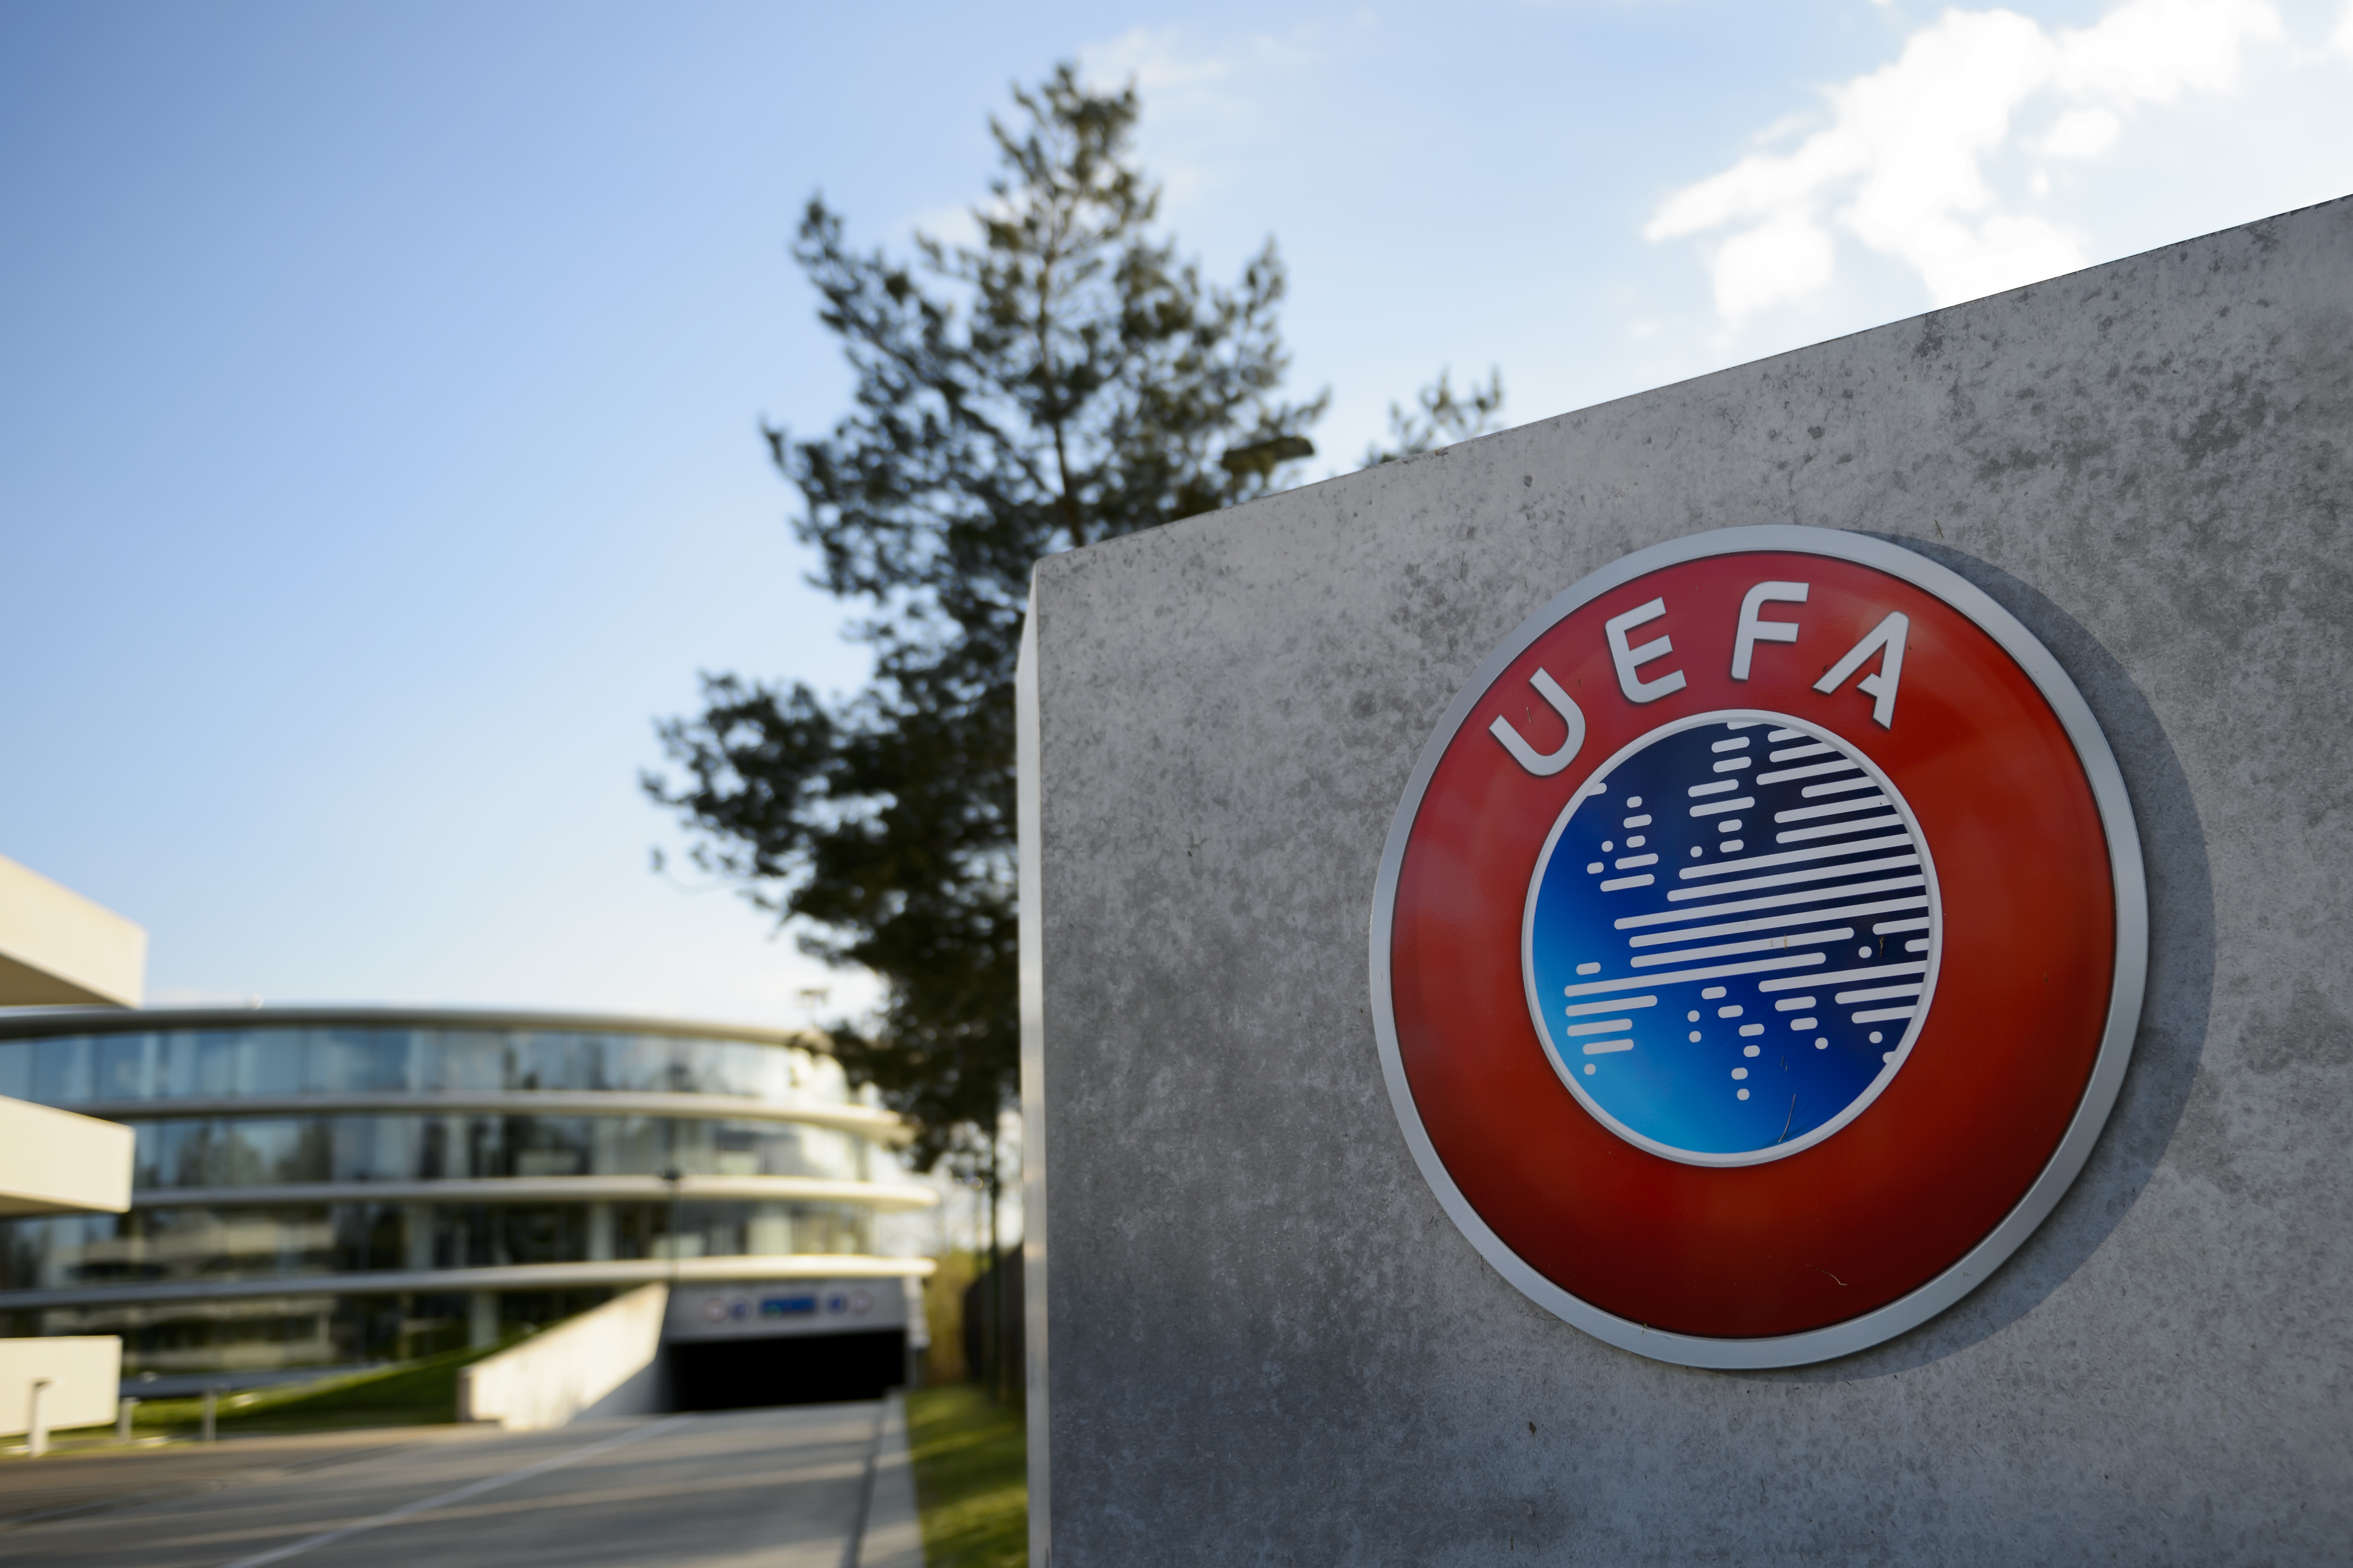 UEFA has alternative plans to save football seasons